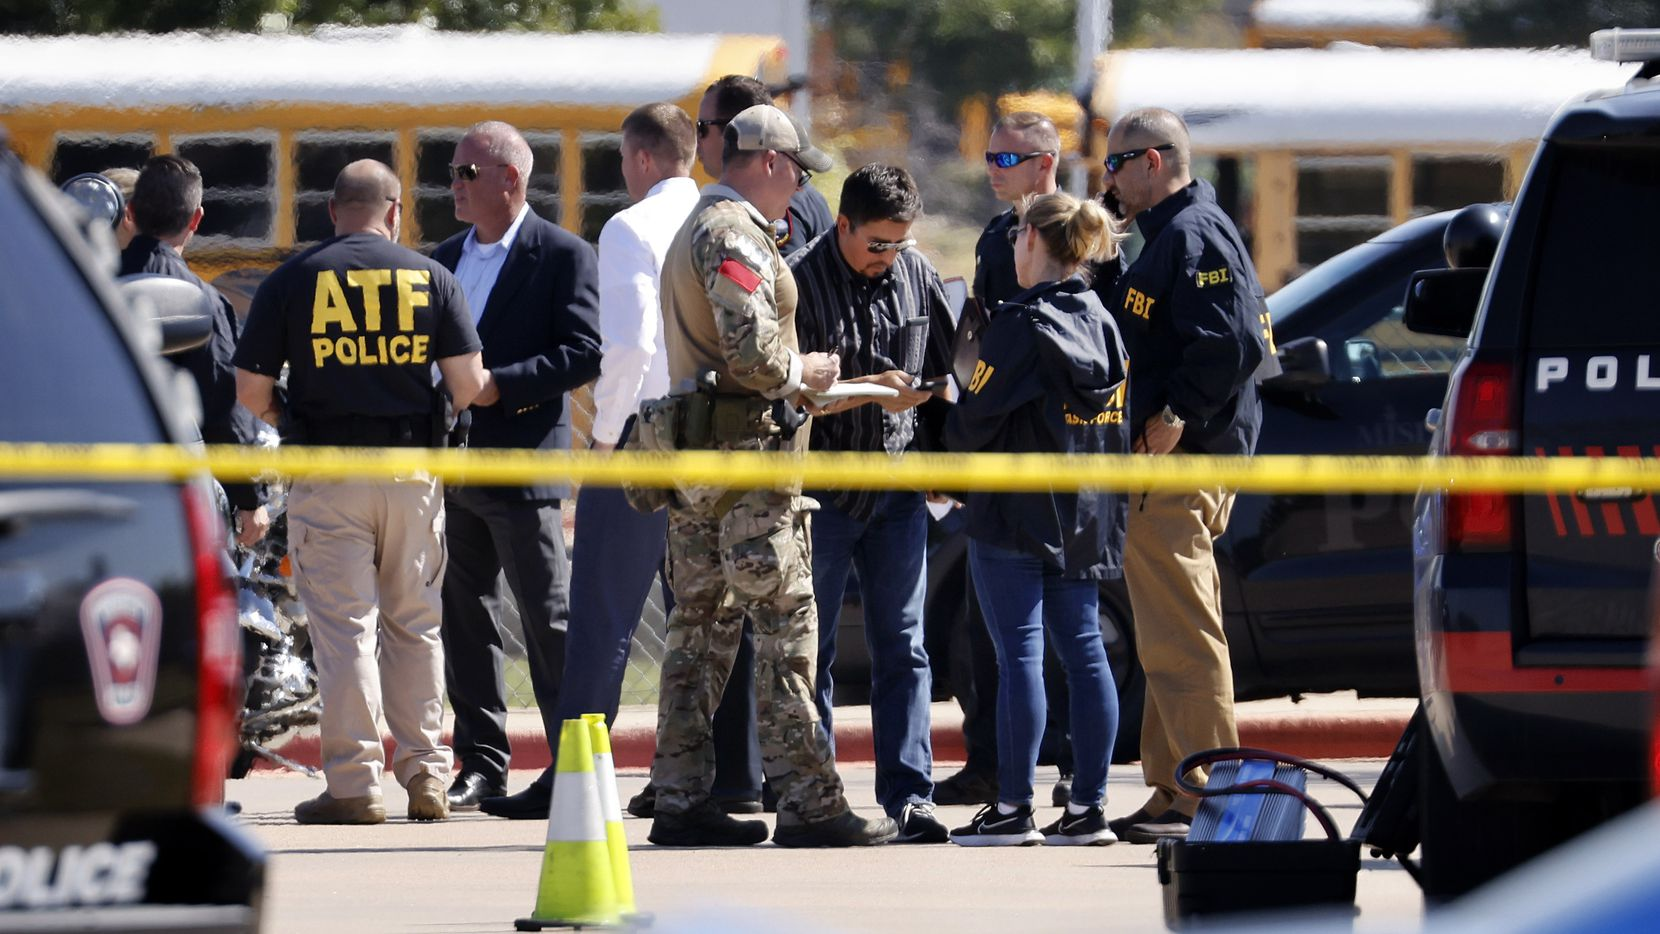 Police officials work the scene of a school shooting at Mansfield Timberview High School in Arlington, Texas, Wednesday, October 6, 2021. Four people were injured in a shooting at Timberview High School in Arlington on Wednesday morning, and authorities said the suspect remained at large. (Tom Fox/The Dallas Morning News)